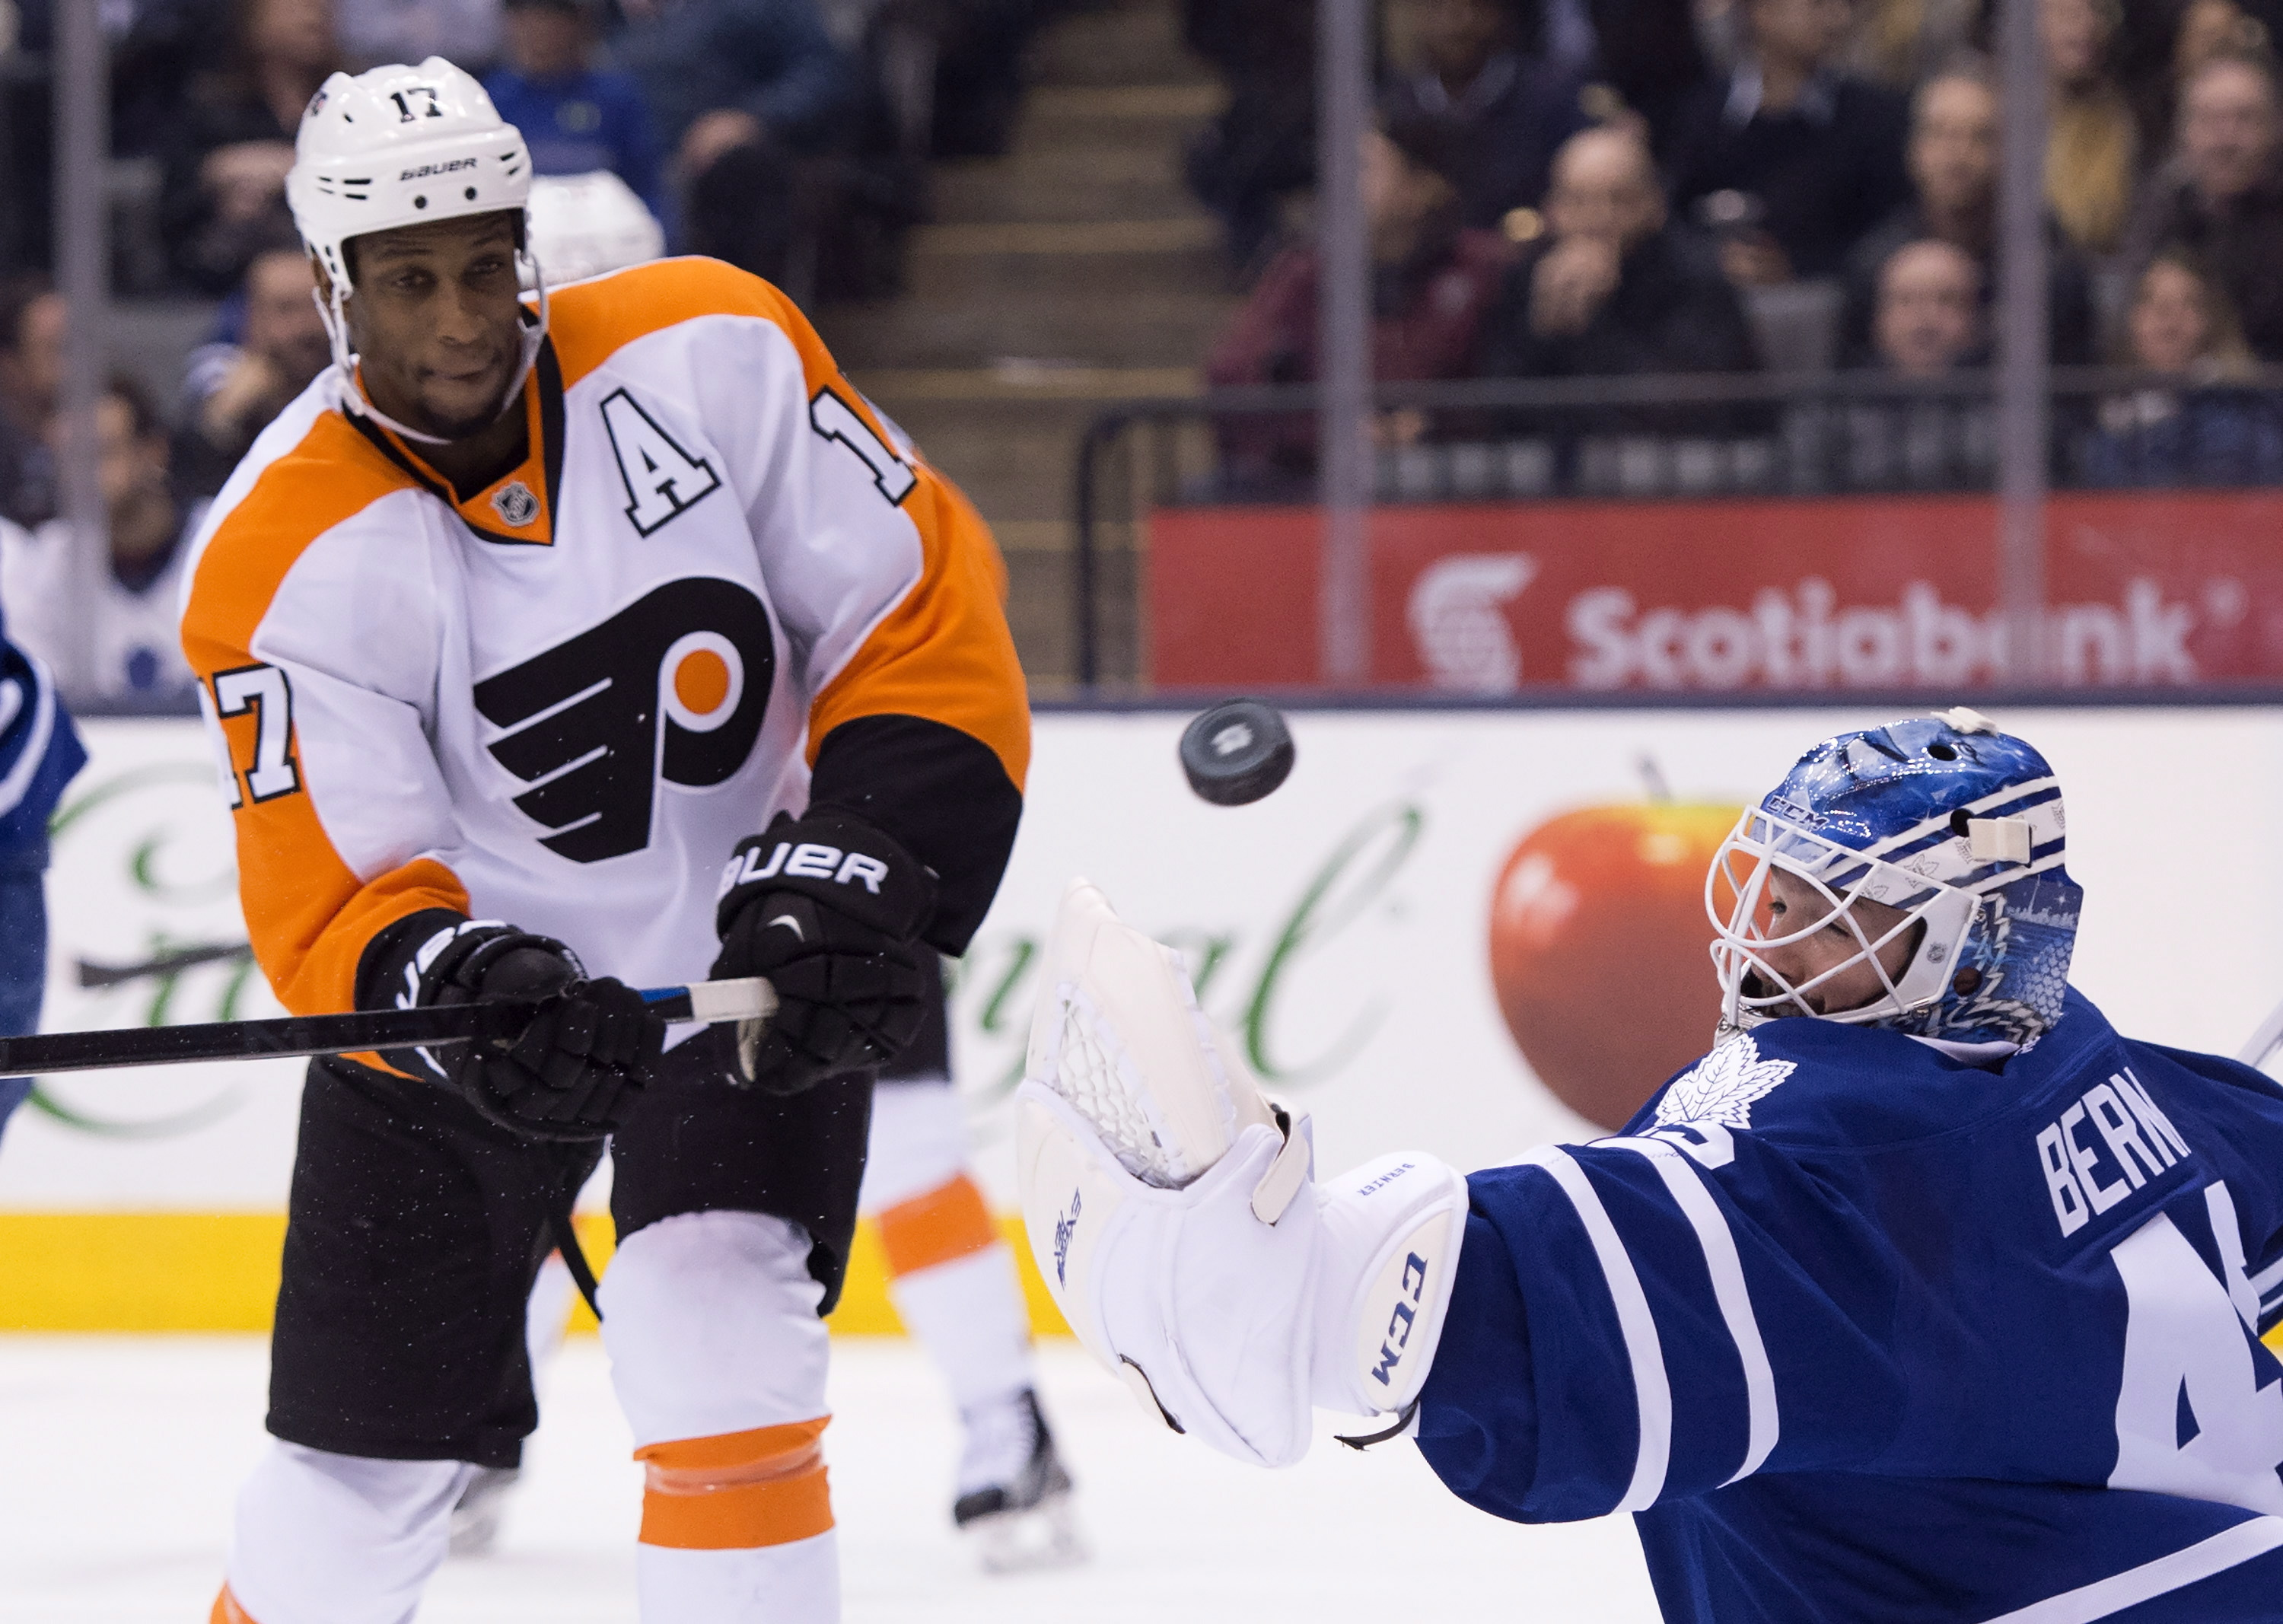 Maple Leafs Sign Forward Wayne Simmonds To 1 Year Deal Citynews Toronto